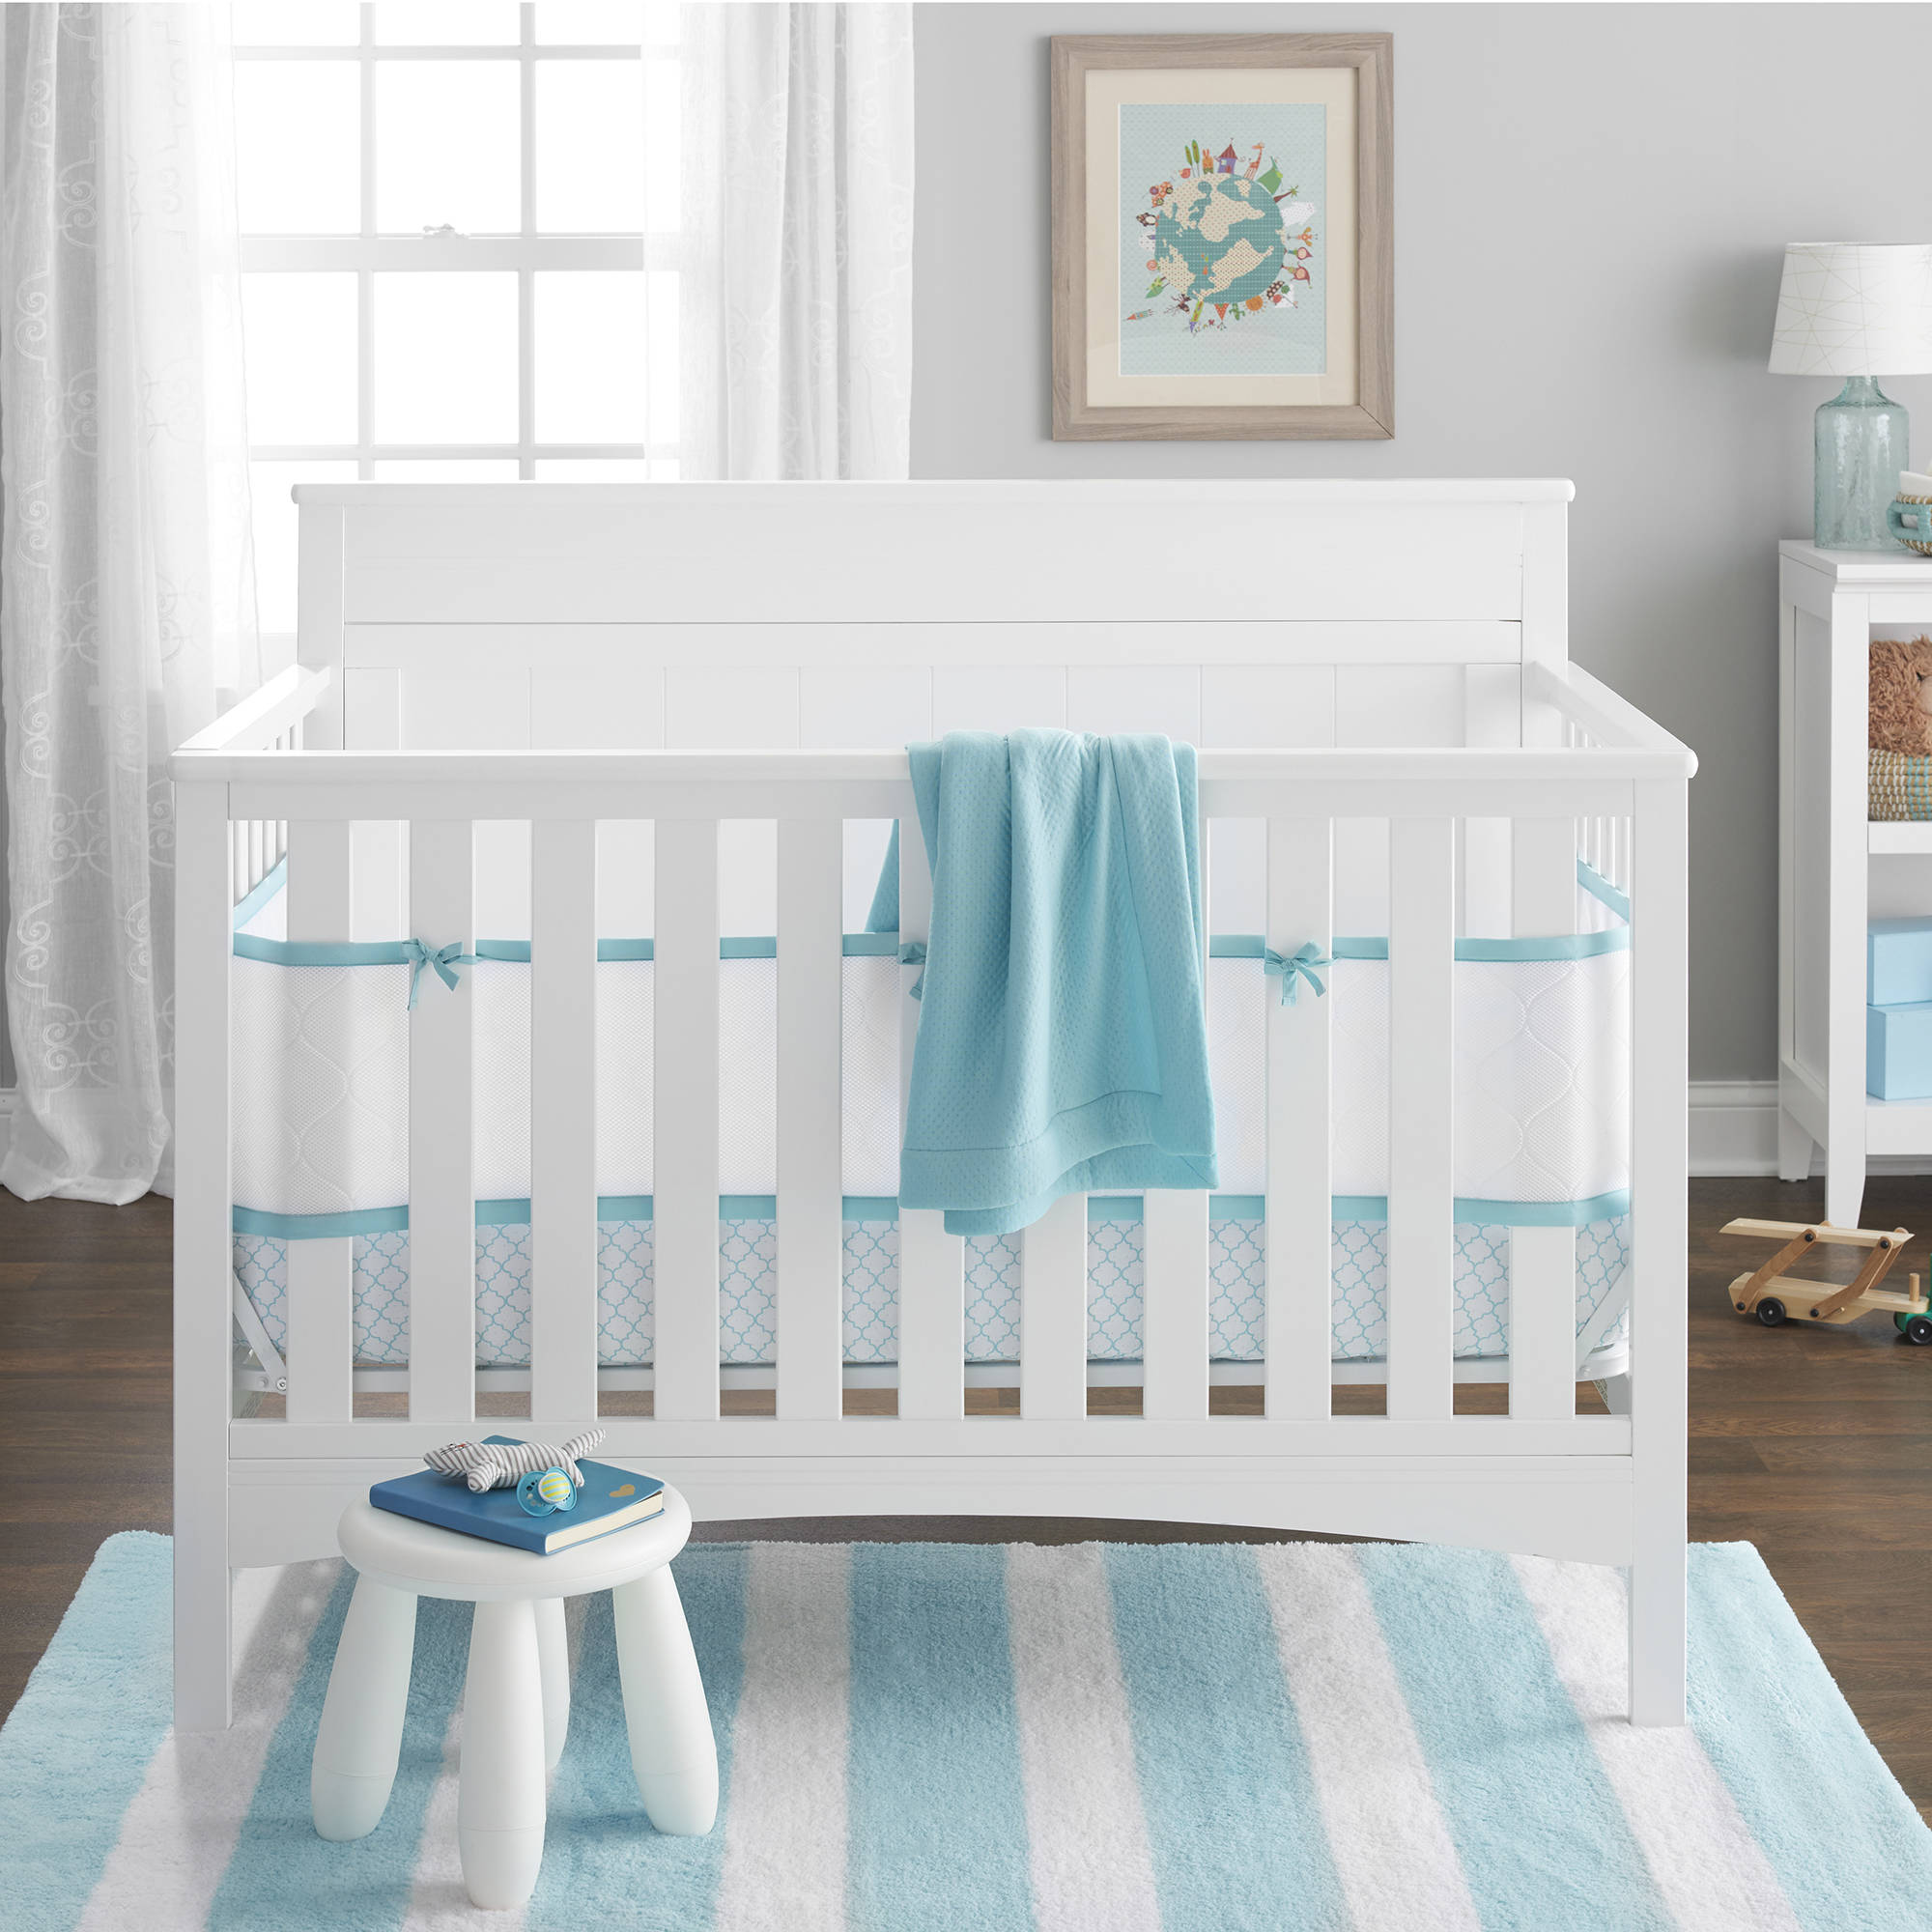 BreathableBaby 4-Piece Deluxe Breathable Embossed Crib Bedding Set, Seafoam